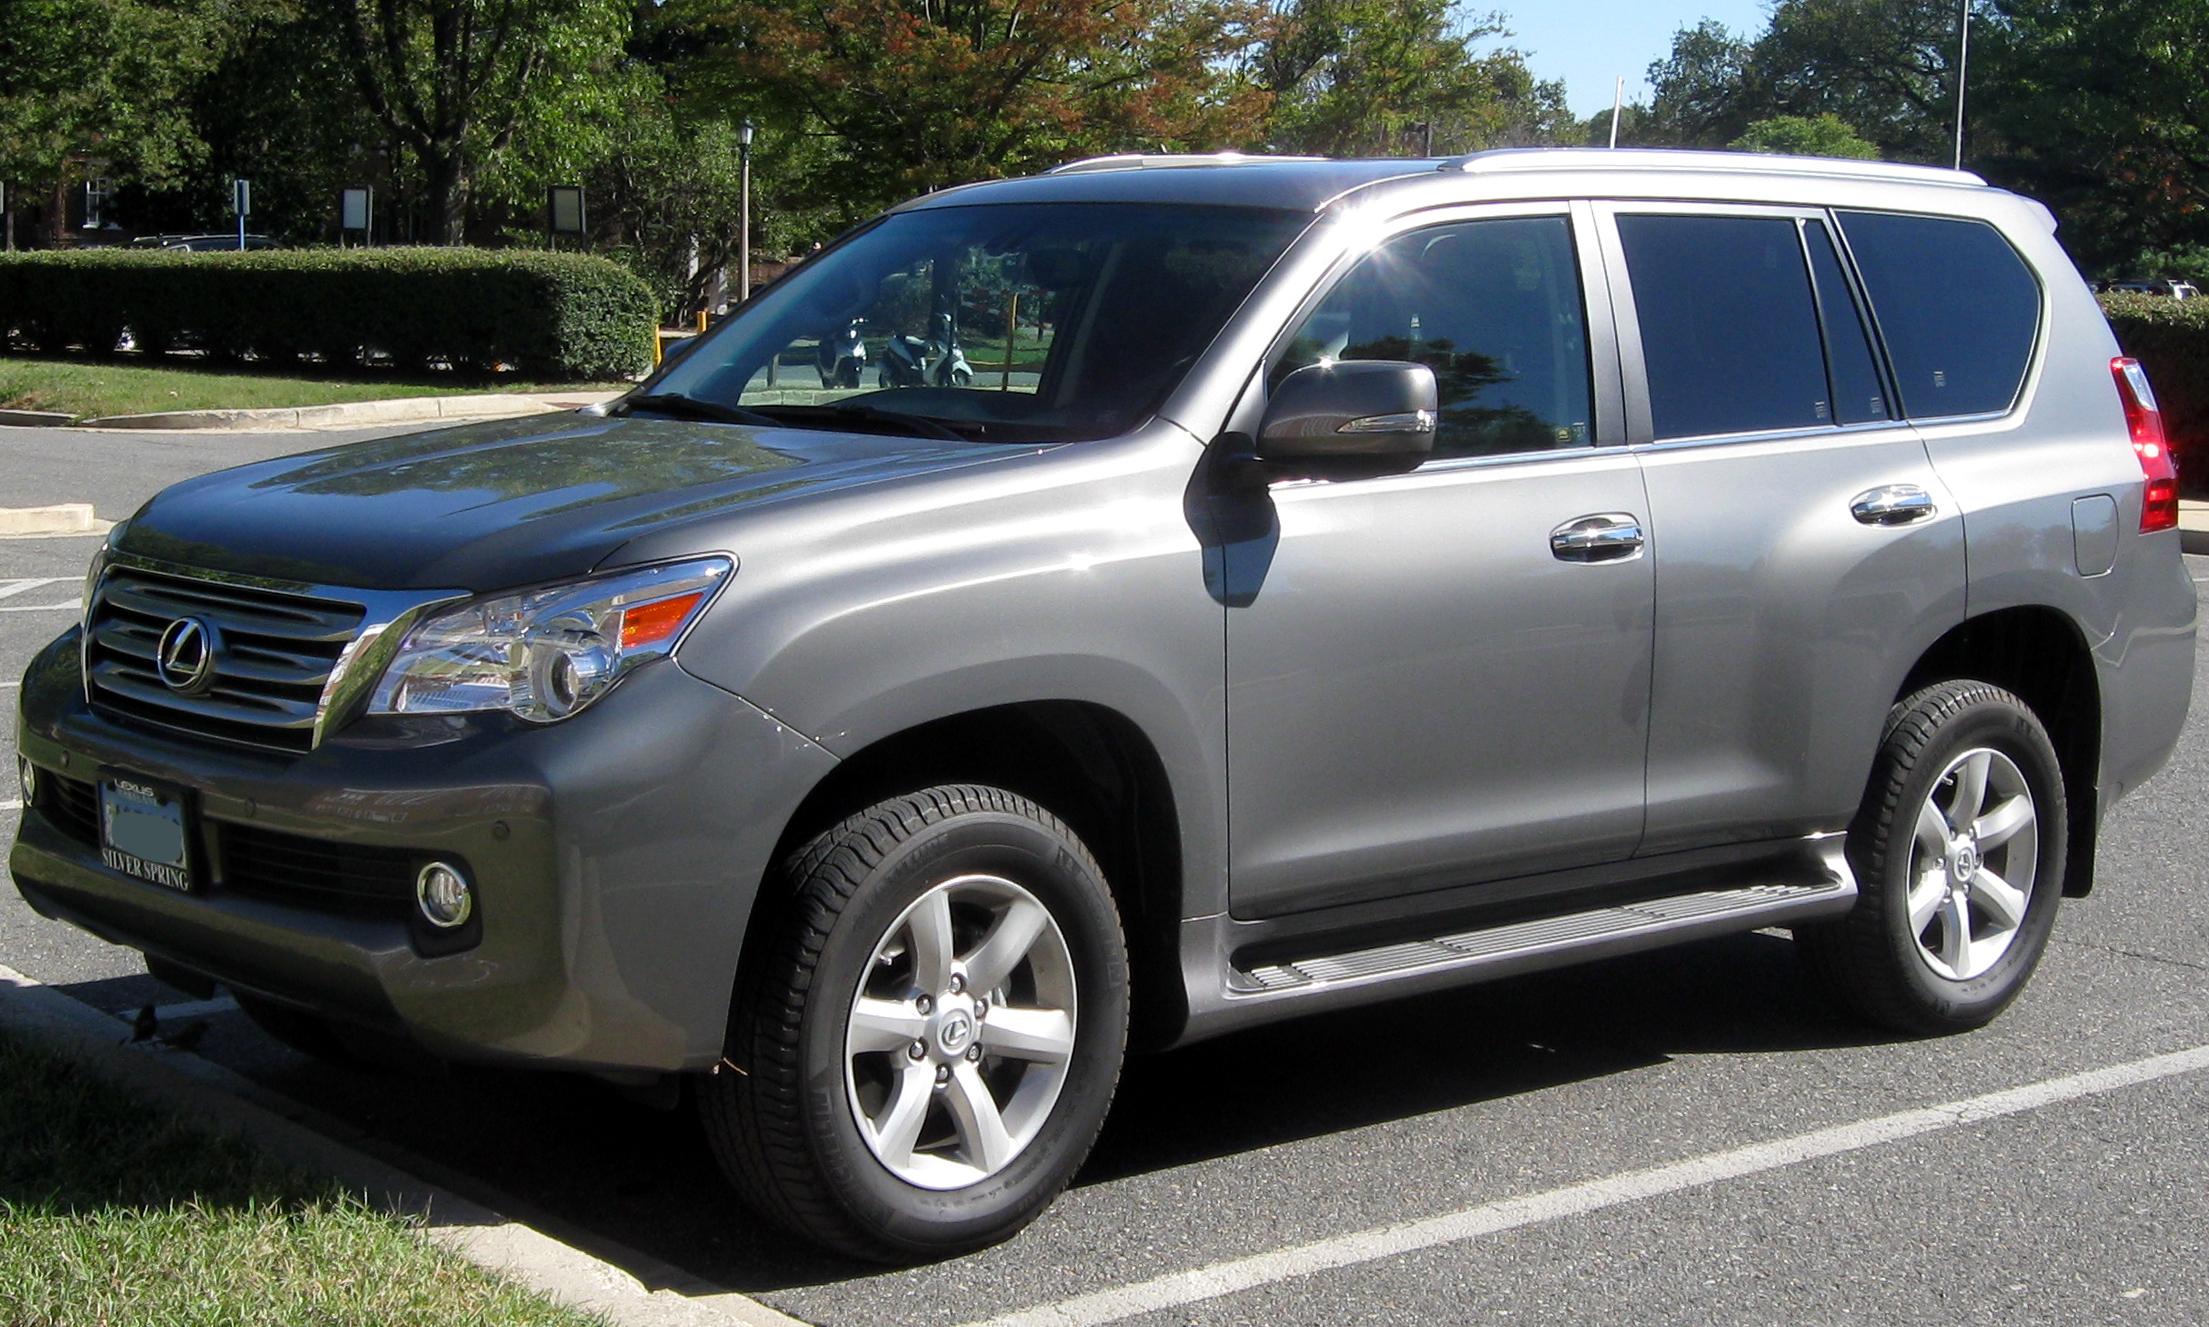 https://upload.wikimedia.org/wikipedia/commons/6/65/Lexus_GX460_--_10-08-2010.jpg